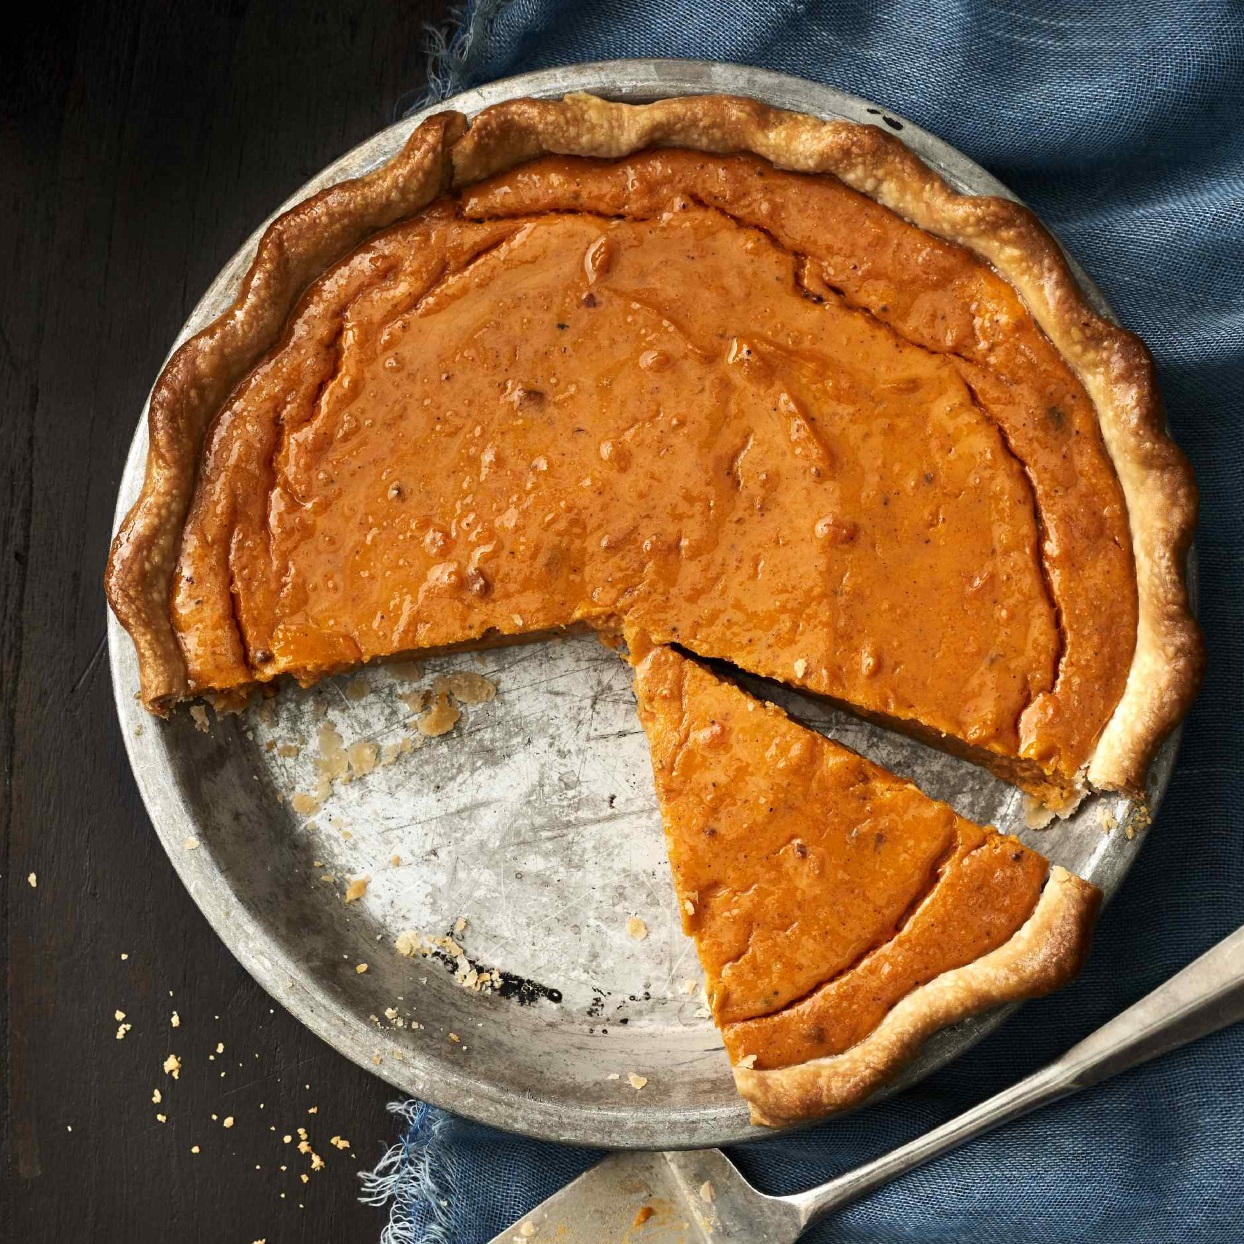 Rose's Sweet Potato Pie Trusted Brands